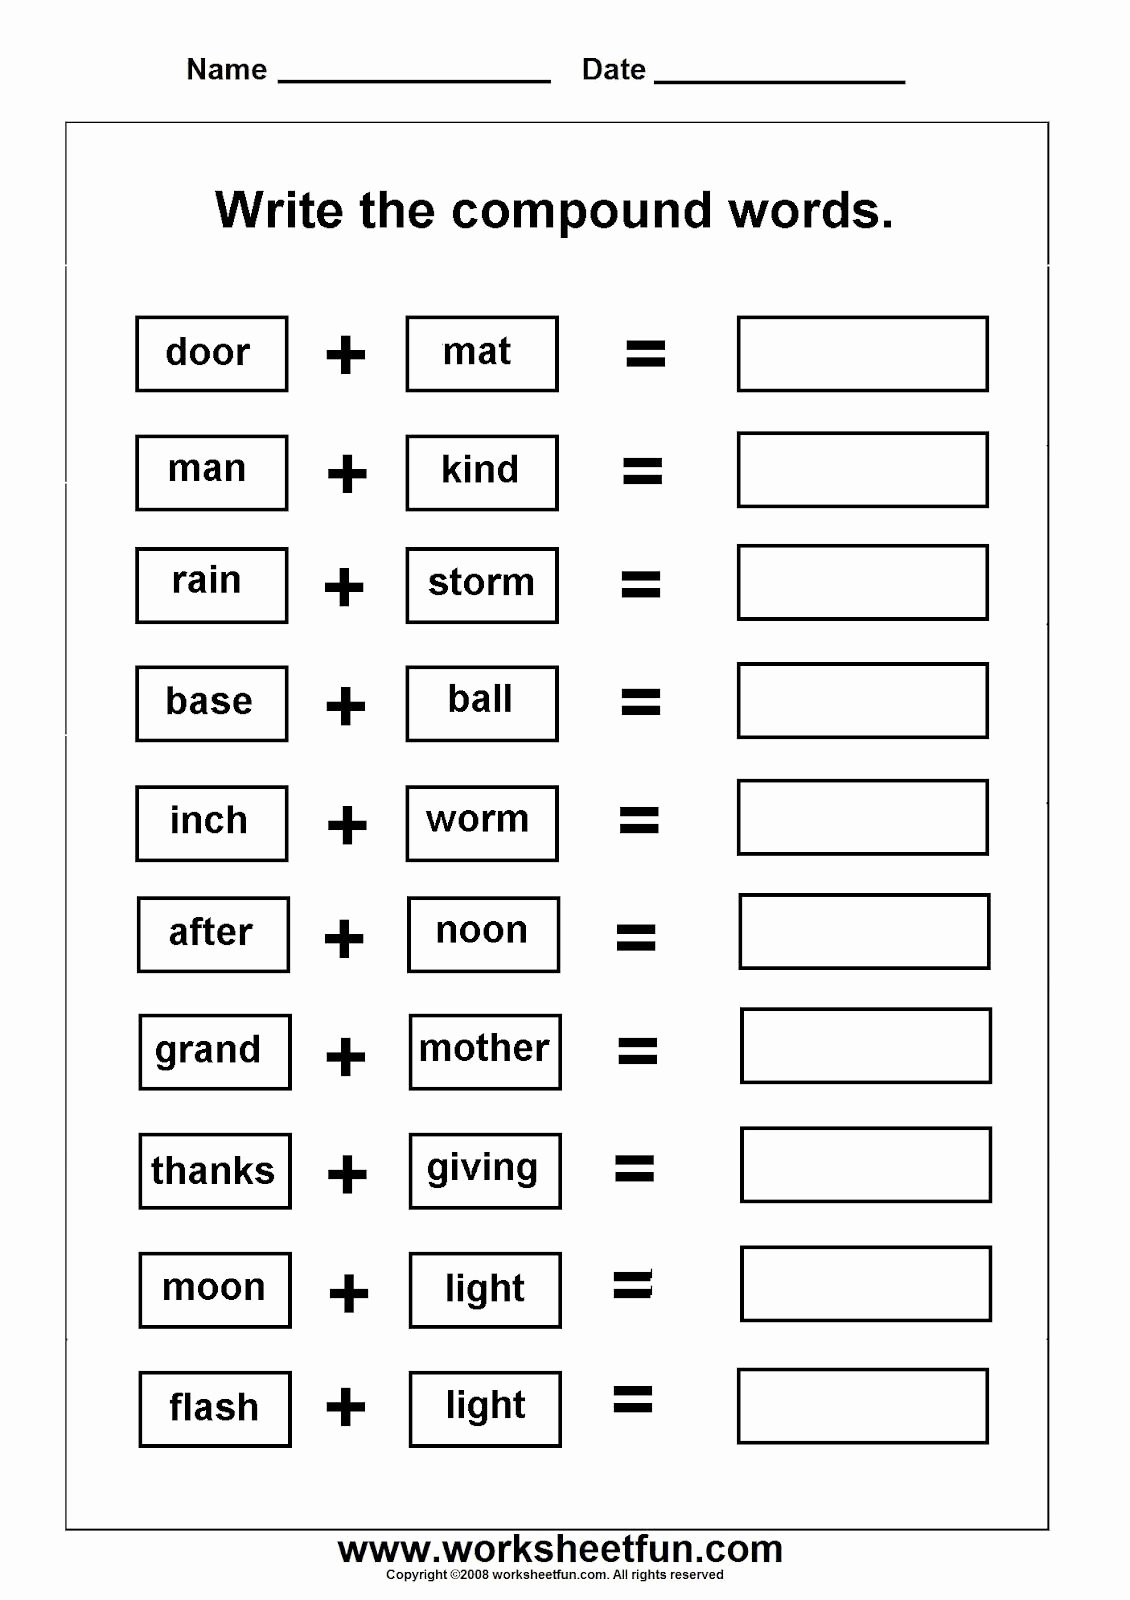 Free Printable Compound Word Worksheets Ideas Pound Words Worksheets Grade 3